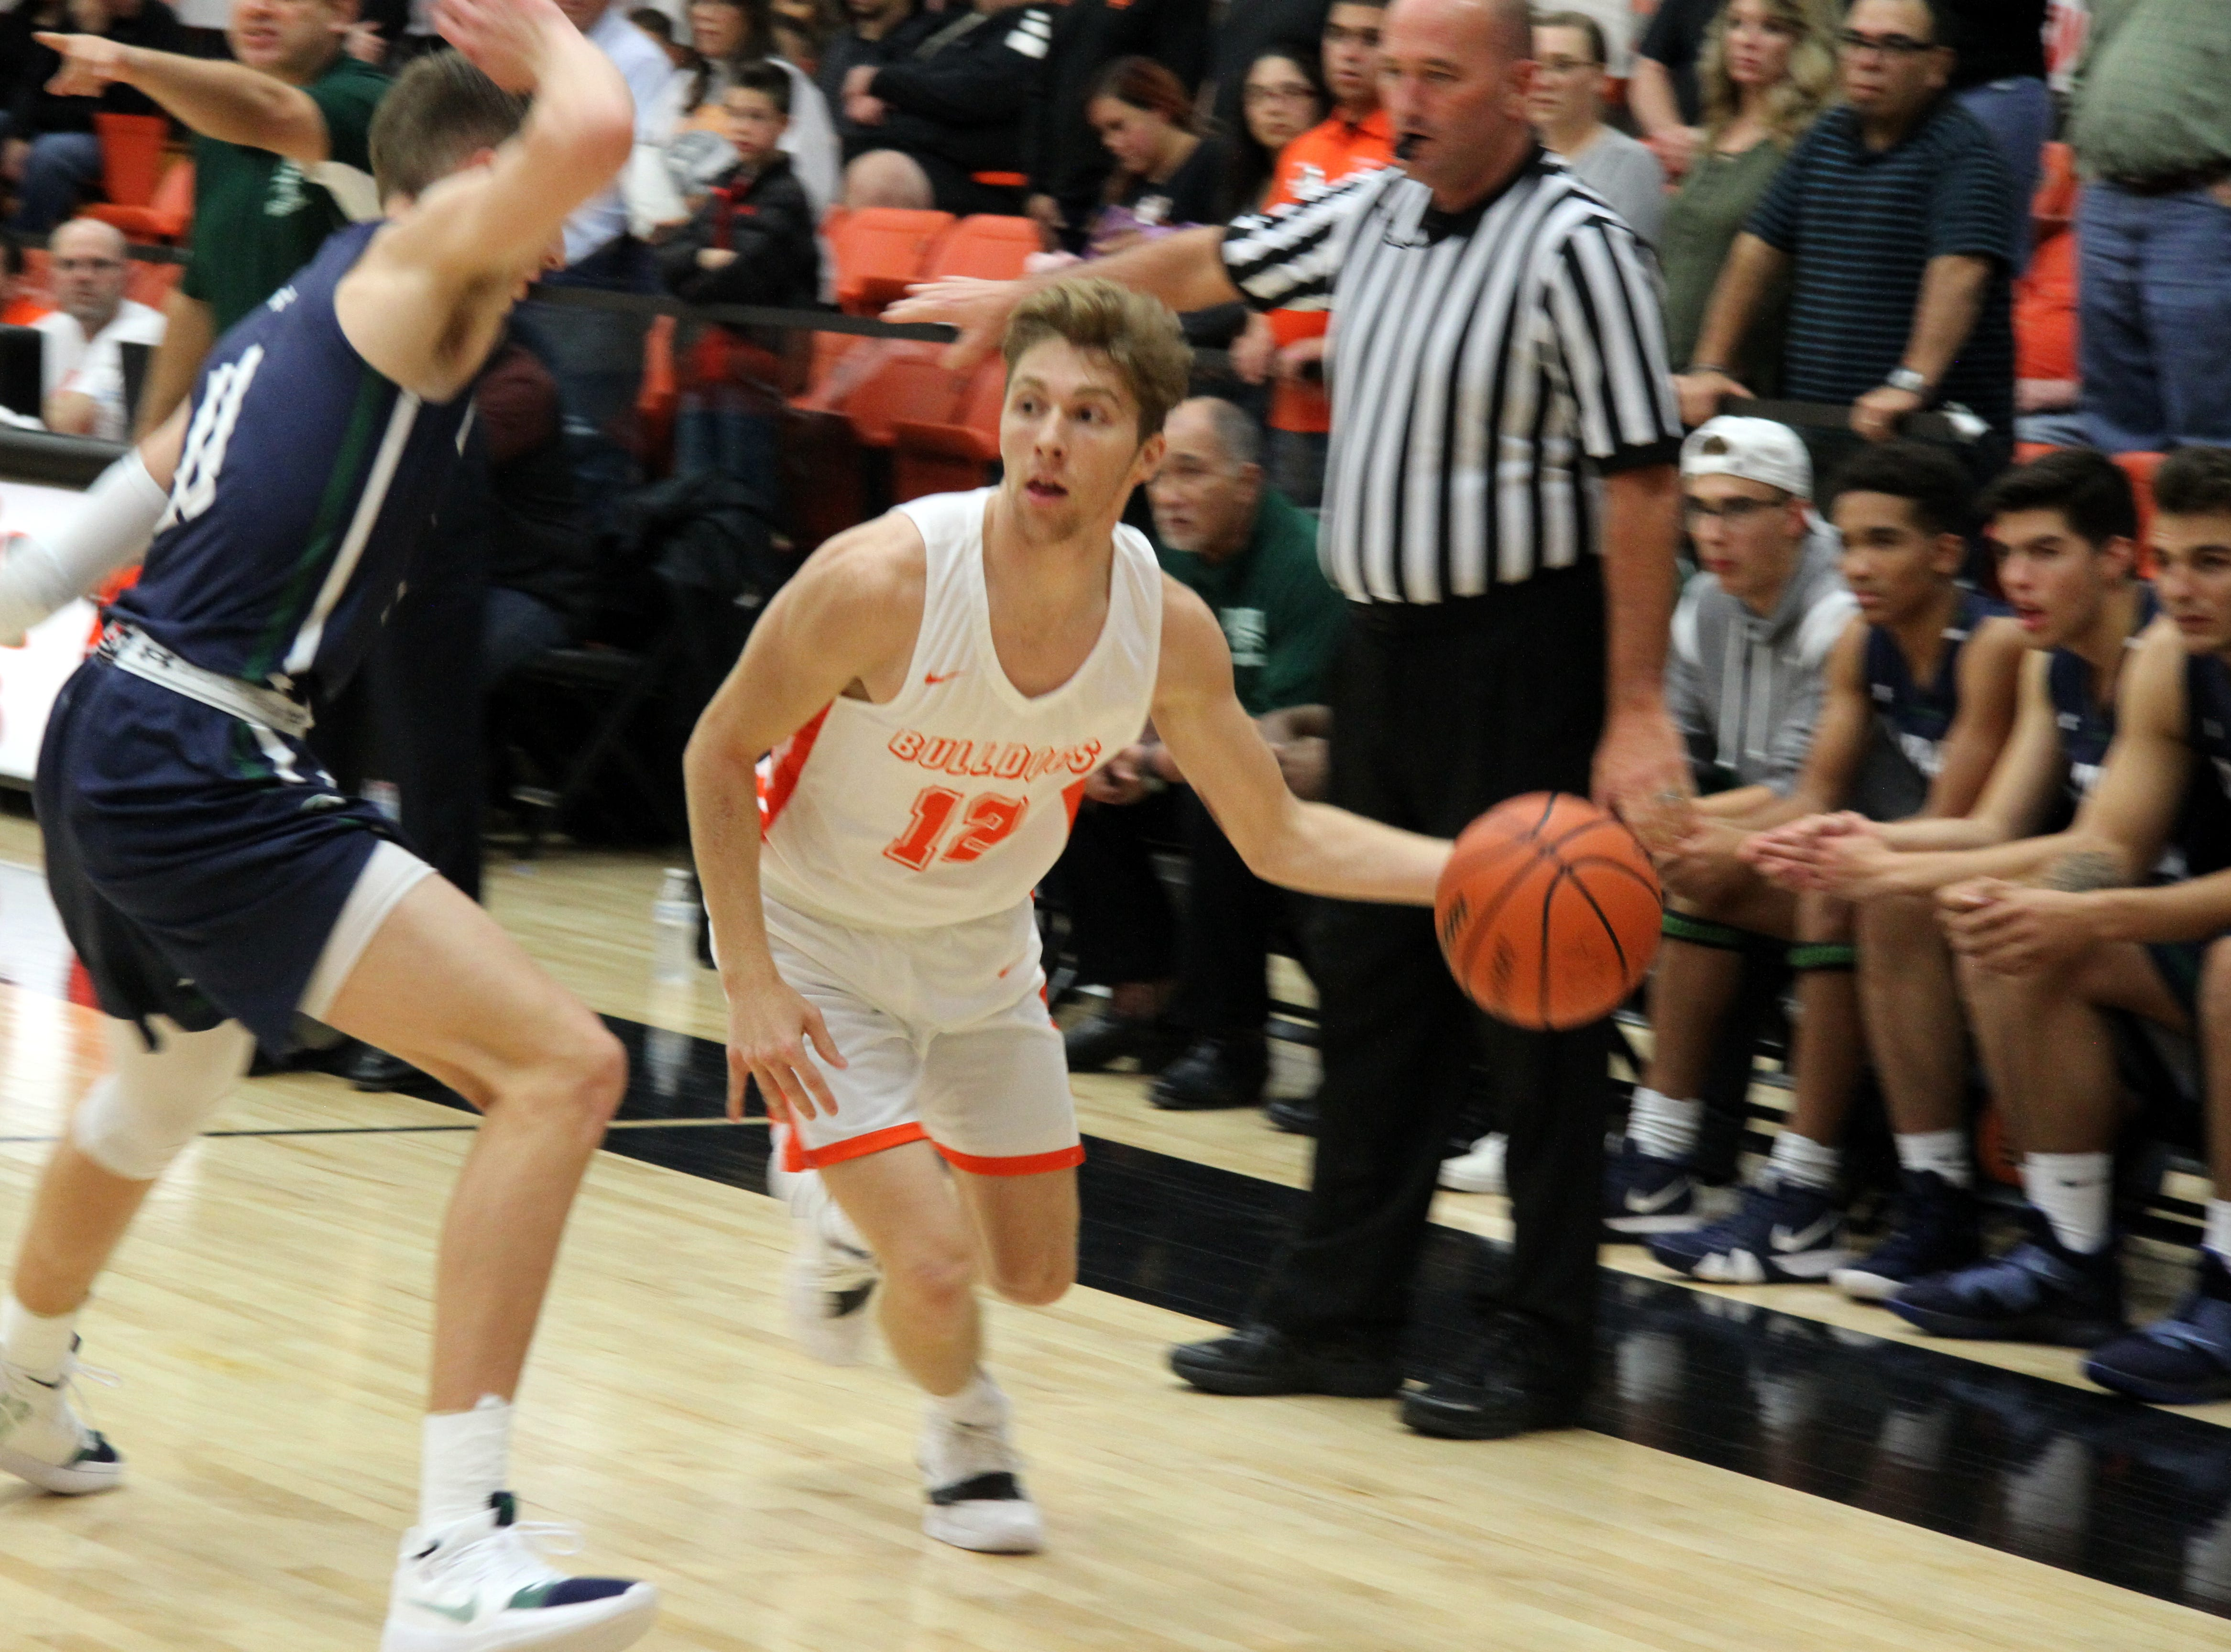 Artesia's Luke Nelson (12) drives by a Rio Rancho defender during Friday's second round of the Artesia Tournament of Champions.